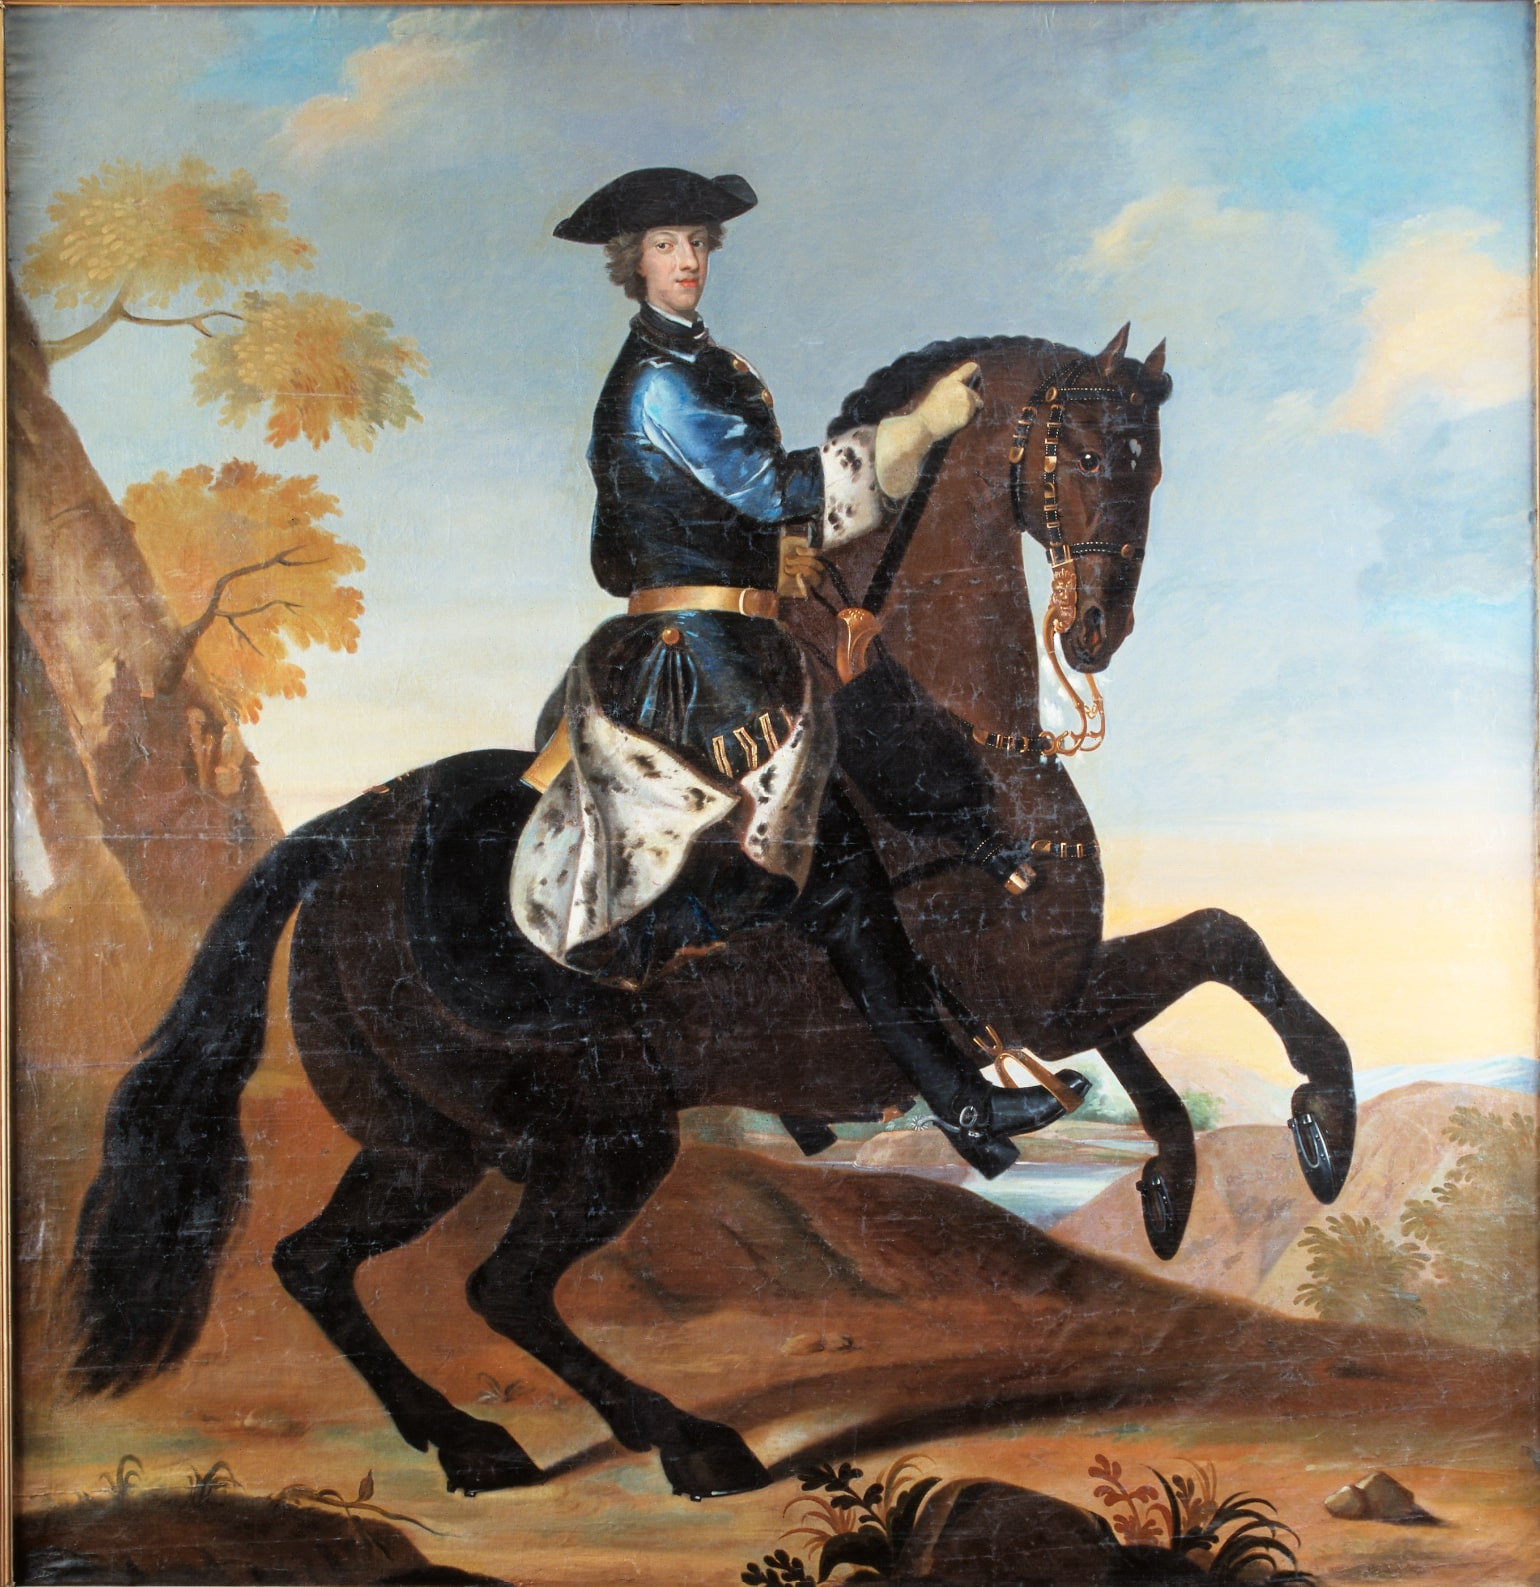 https://upload.wikimedia.org/wikipedia/commons/6/61/Karl_XII_at_horse.jpg